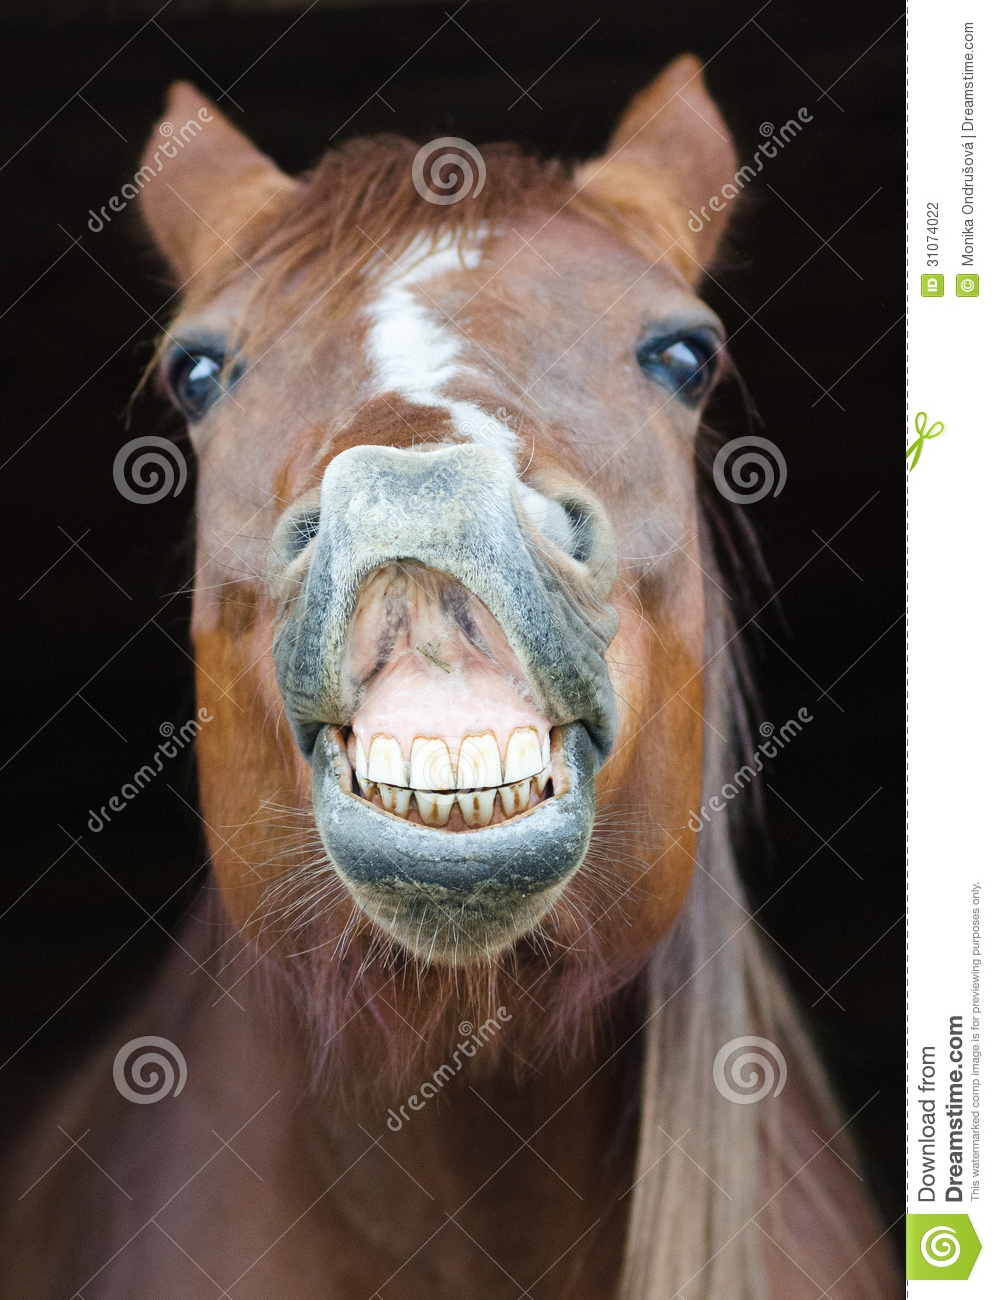 11 942 Funny Horse Photos Free Royalty Free Stock Photos From Dreamstime